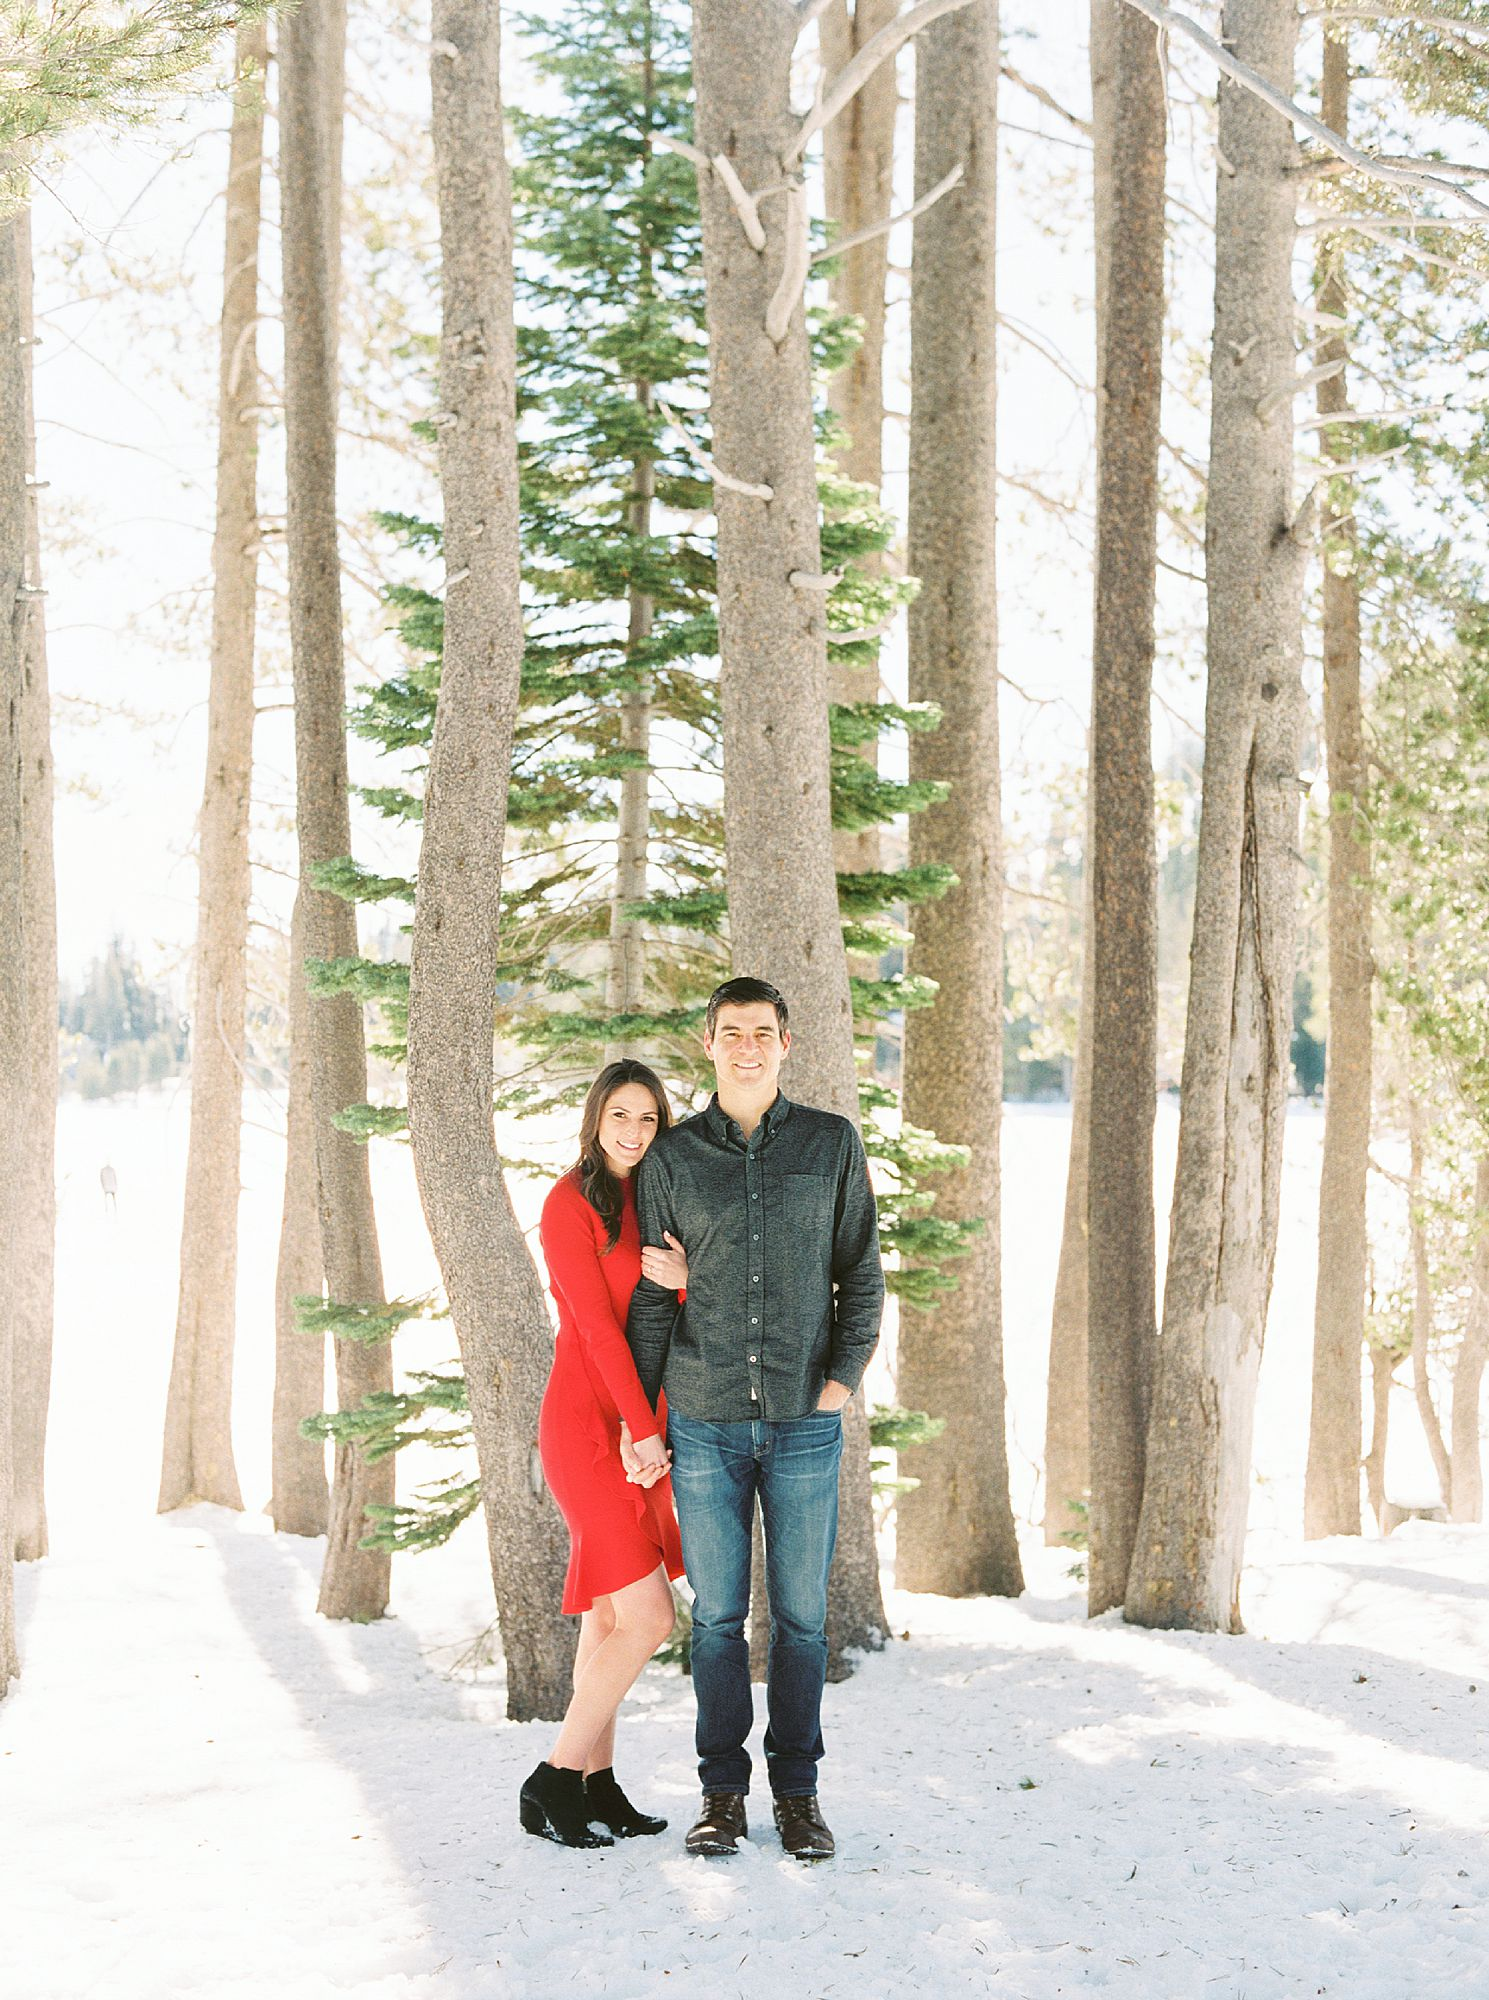 Snowy Tahoe Engagement Session - Alex and Kevin - Ashley Baumgartner - Tahoe Engagement Session - Tahoe Wedding Photographer - Tahoe Engagement Photos - Snow Engagement Photos_0036.jpg